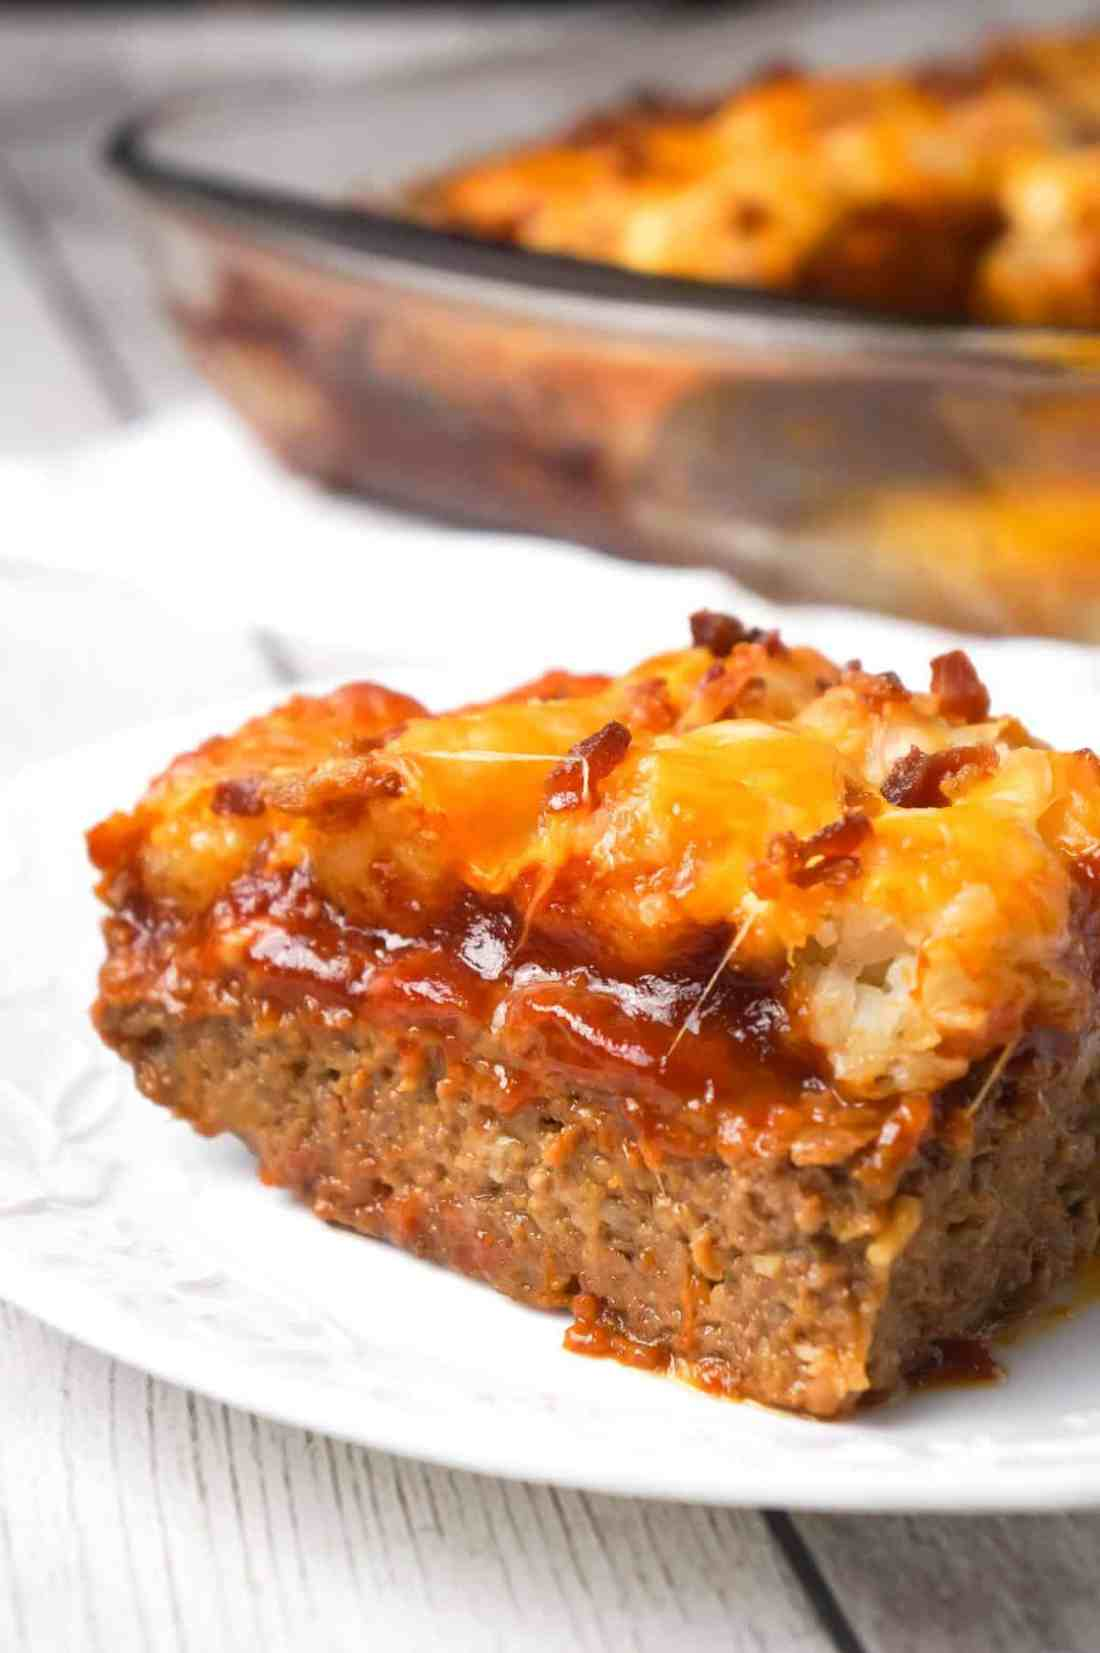 Cheesy Tater Tot Meatloaf Casserole is an easy ground beef dinner recipe with a meatloaf base, topped with a ketchup and bbq sauce glaze, tater tots, shredded cheese and crumbled bacon.